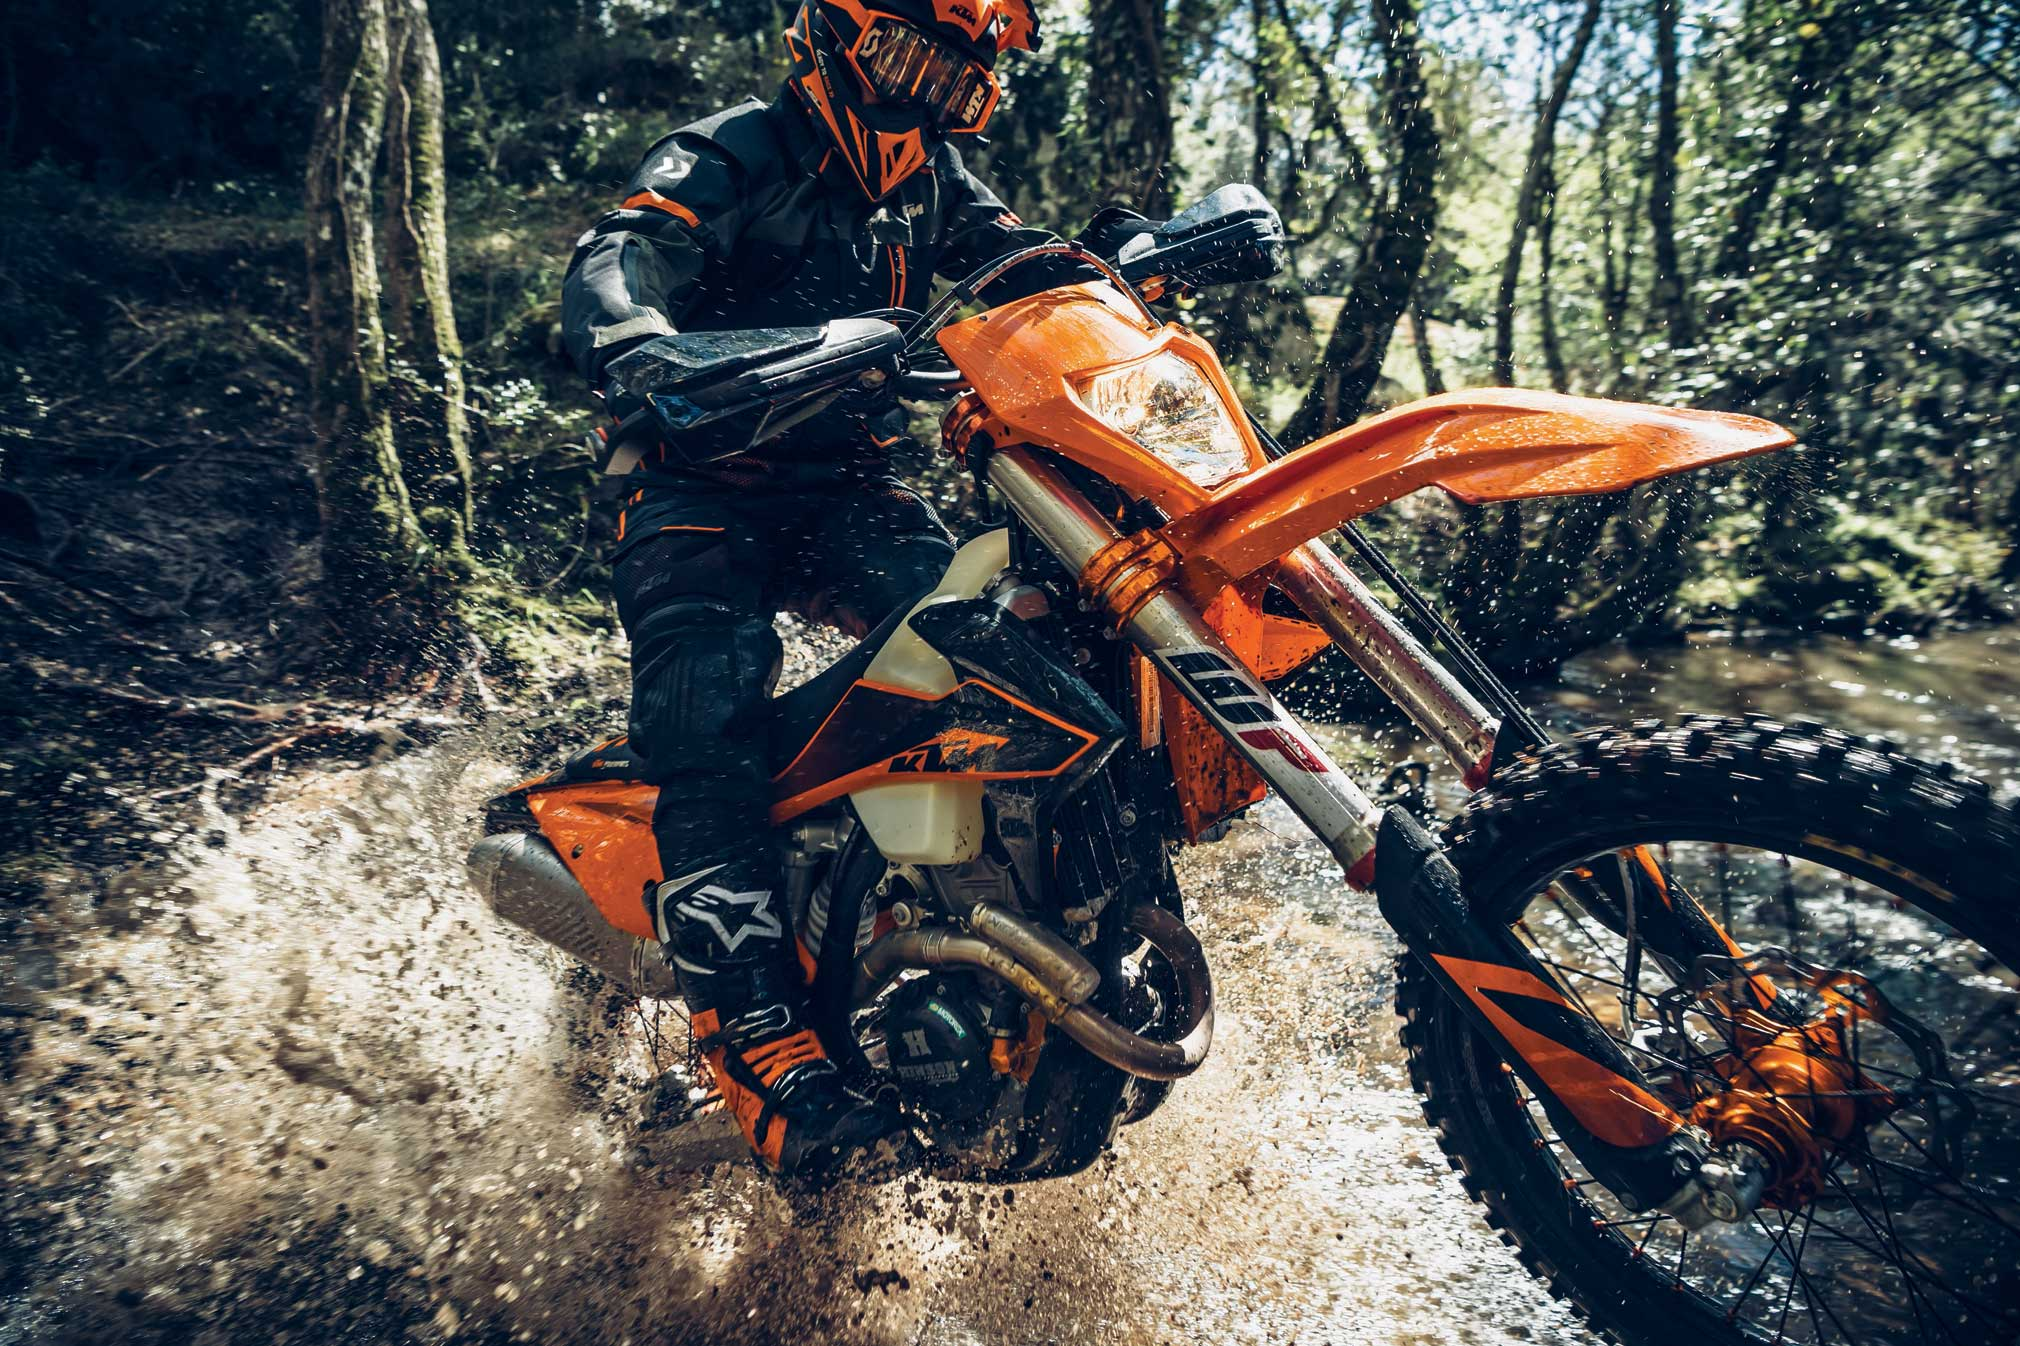 2020 KTM Motorcycle Guide • Total Motorcycle